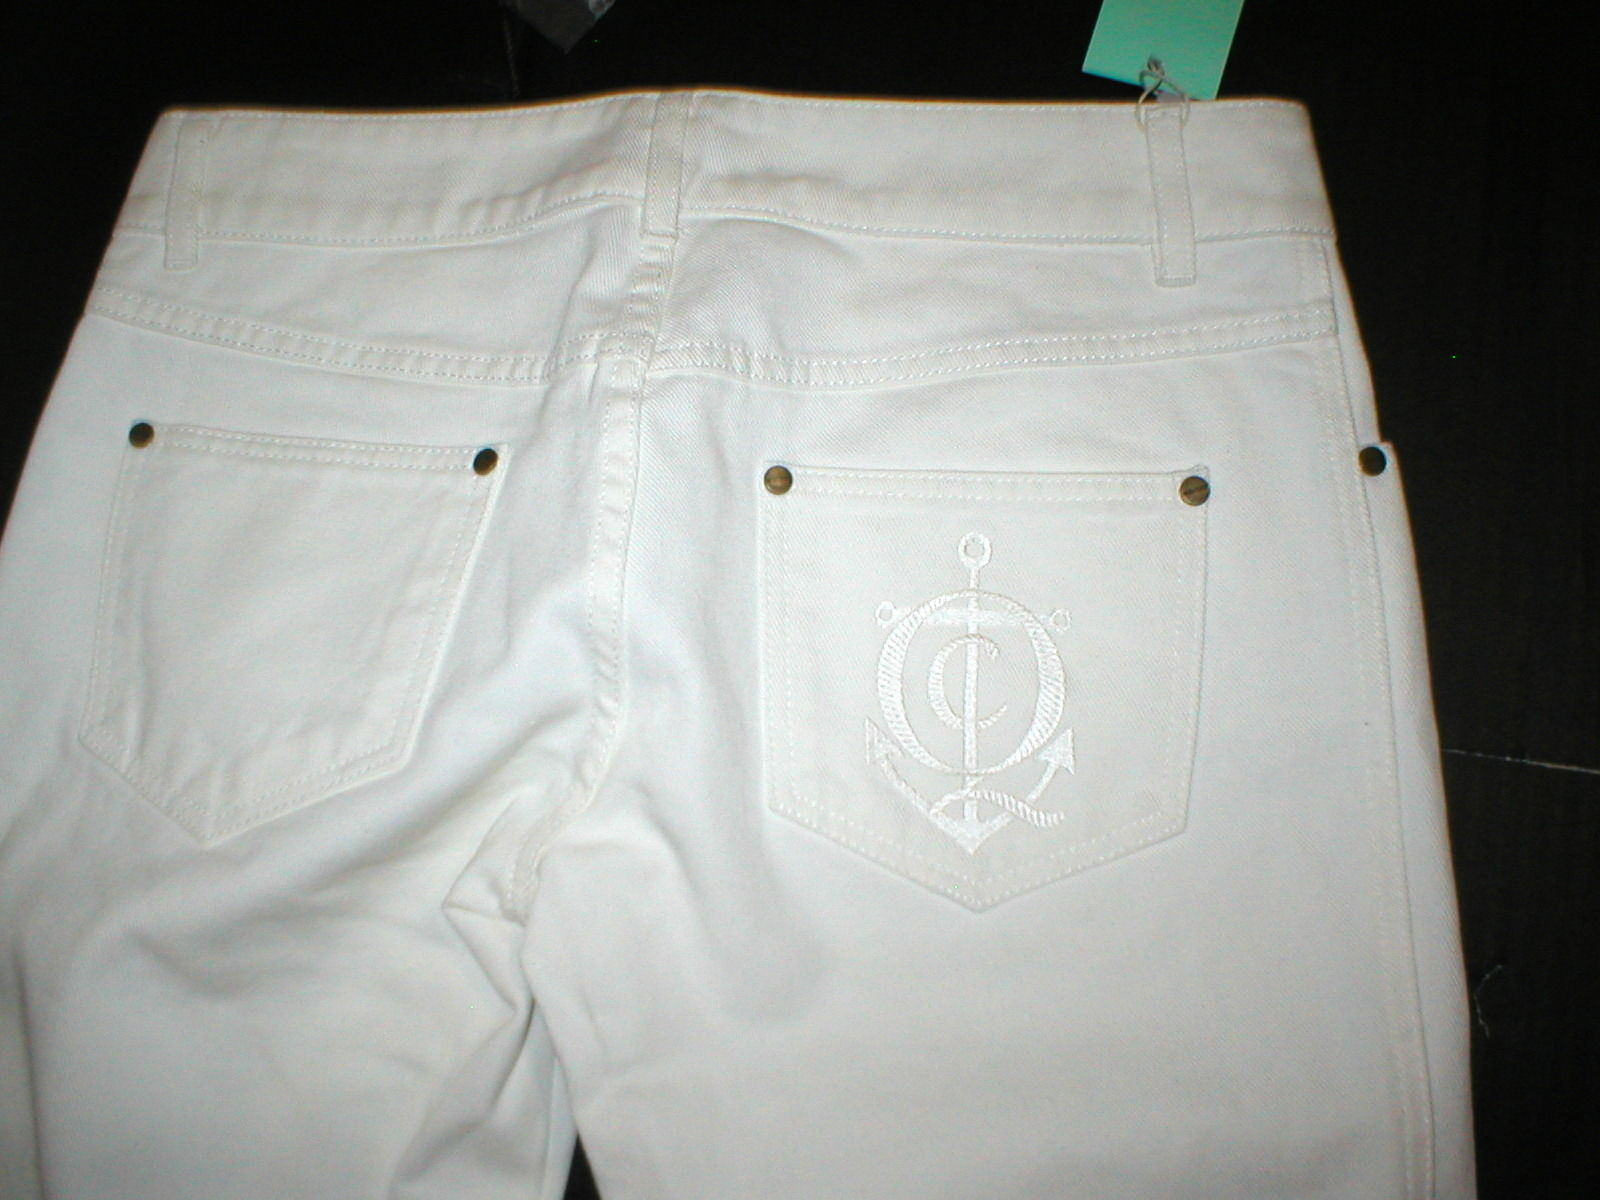 New NWT 4 6 Alexander McQueen Womens Jeans Designer Italy 42 White Tall 30 x 37